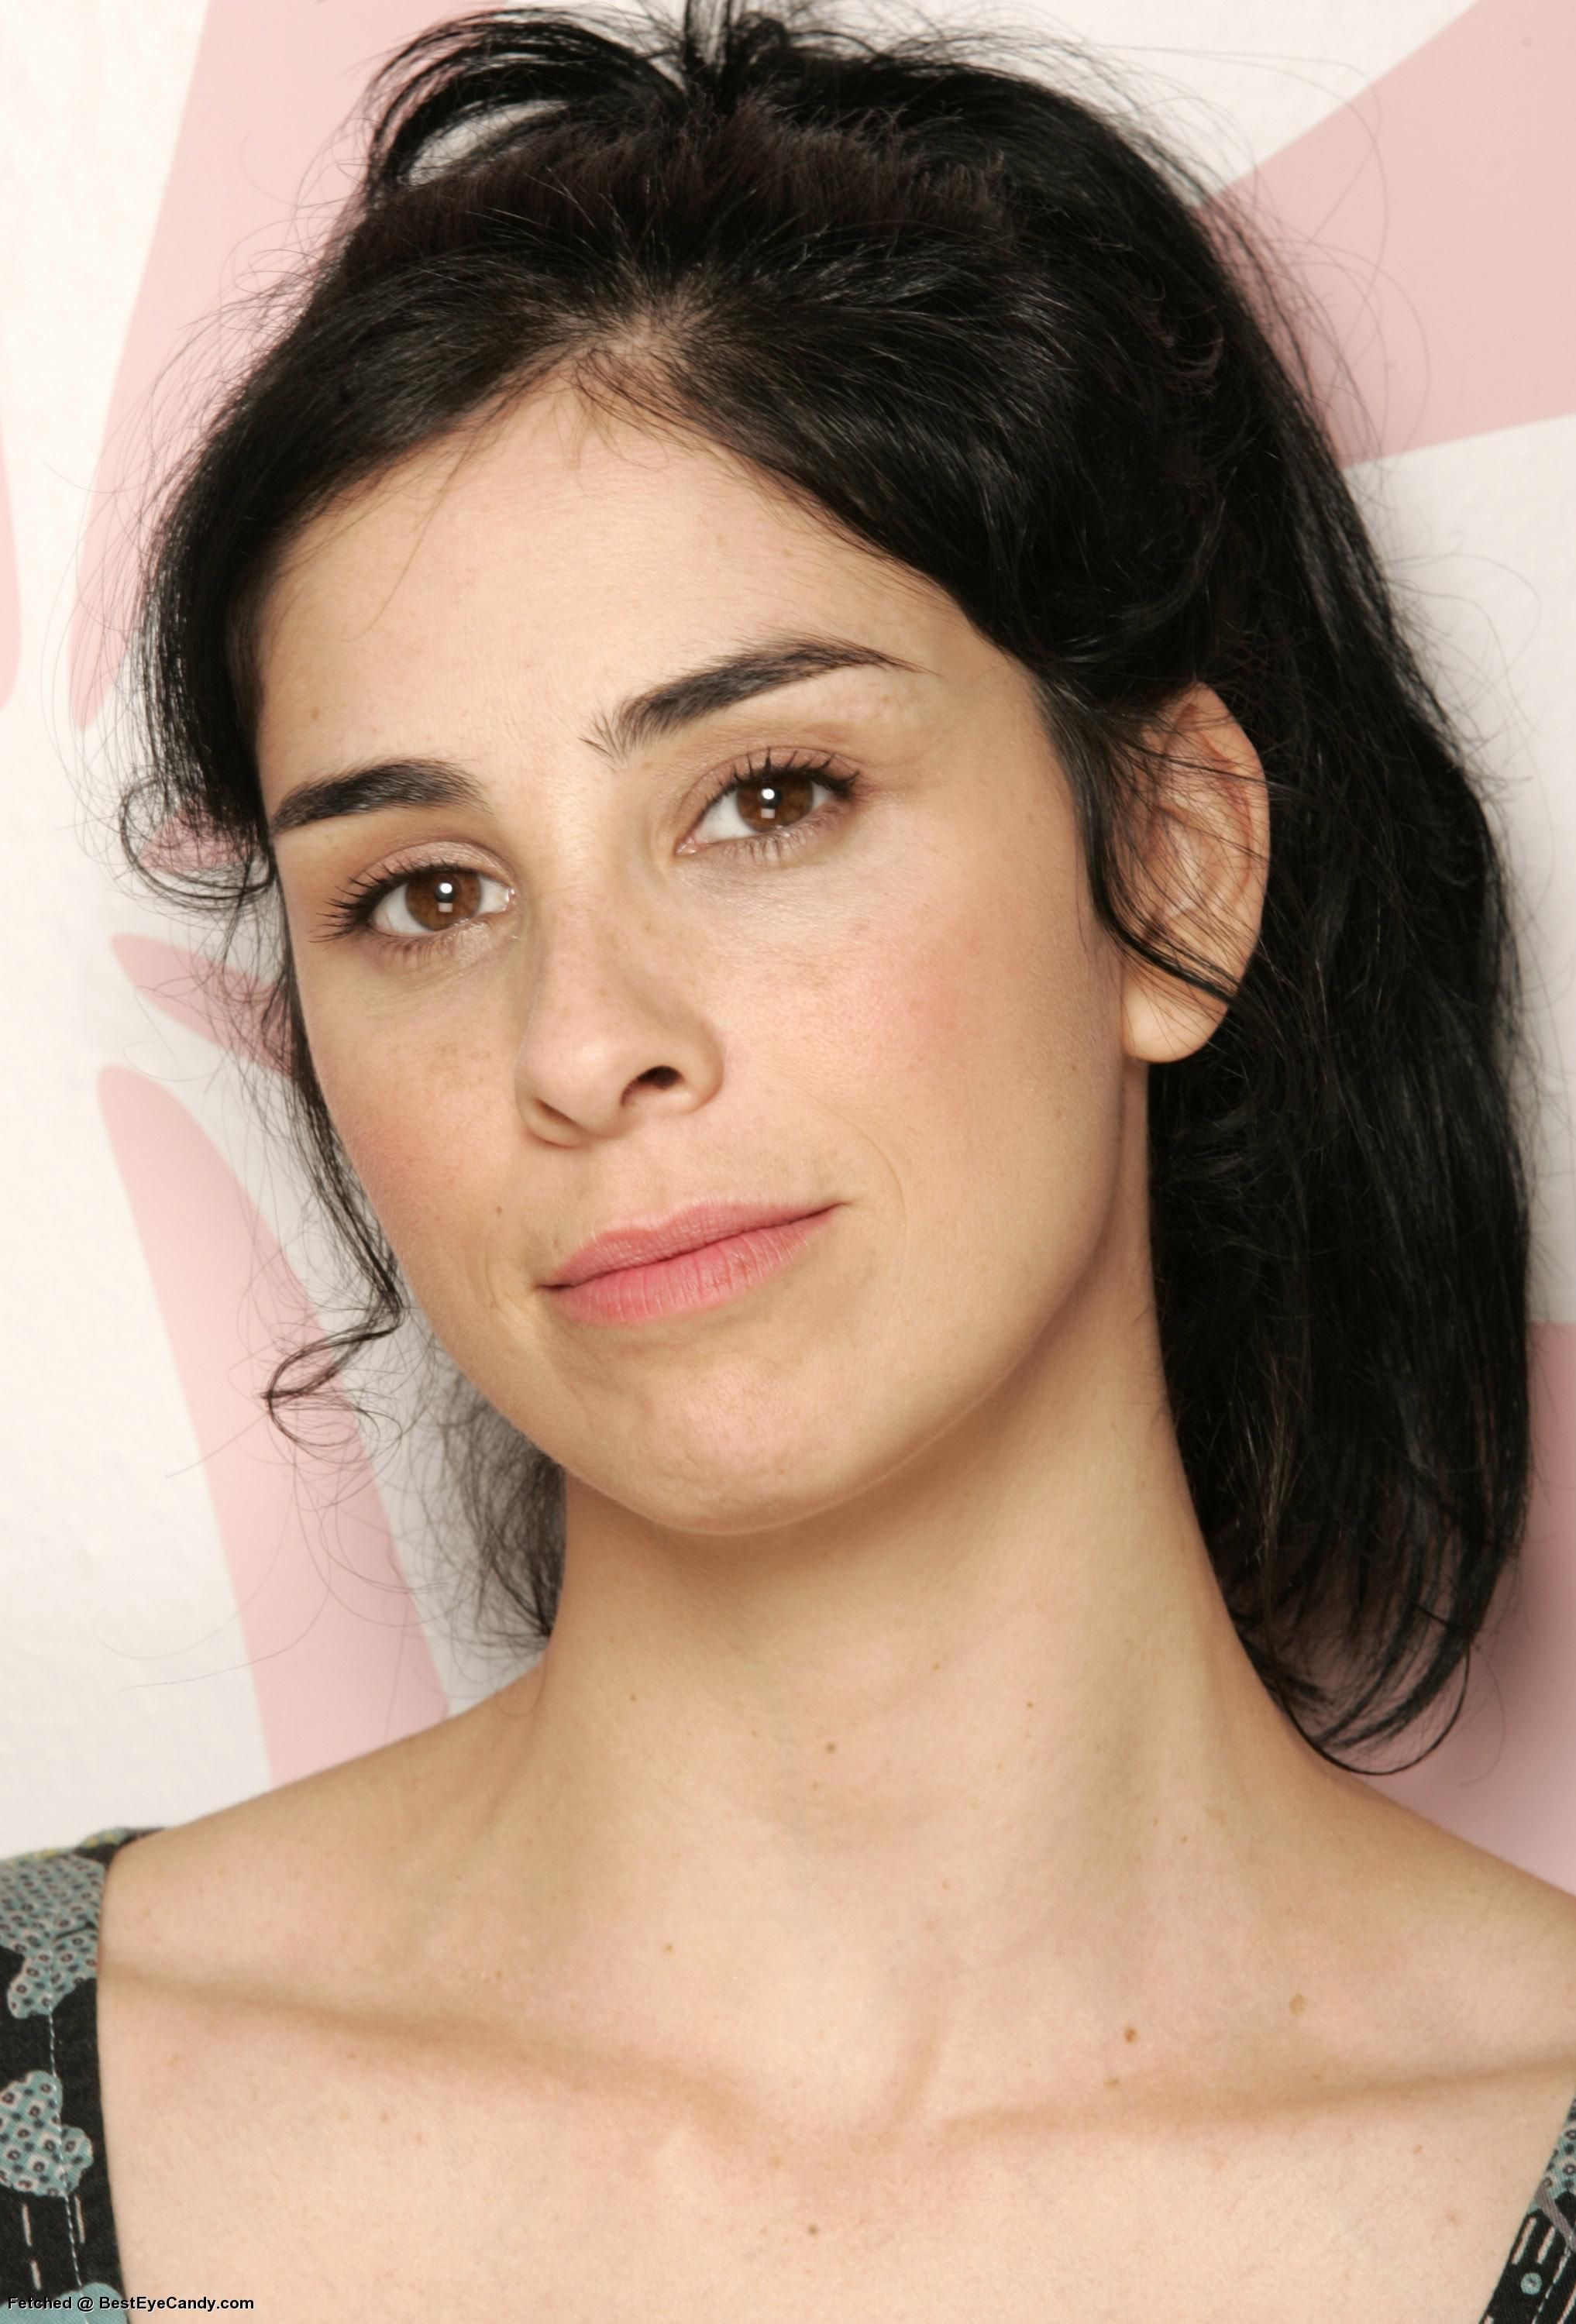 sarah silverman wallpaper